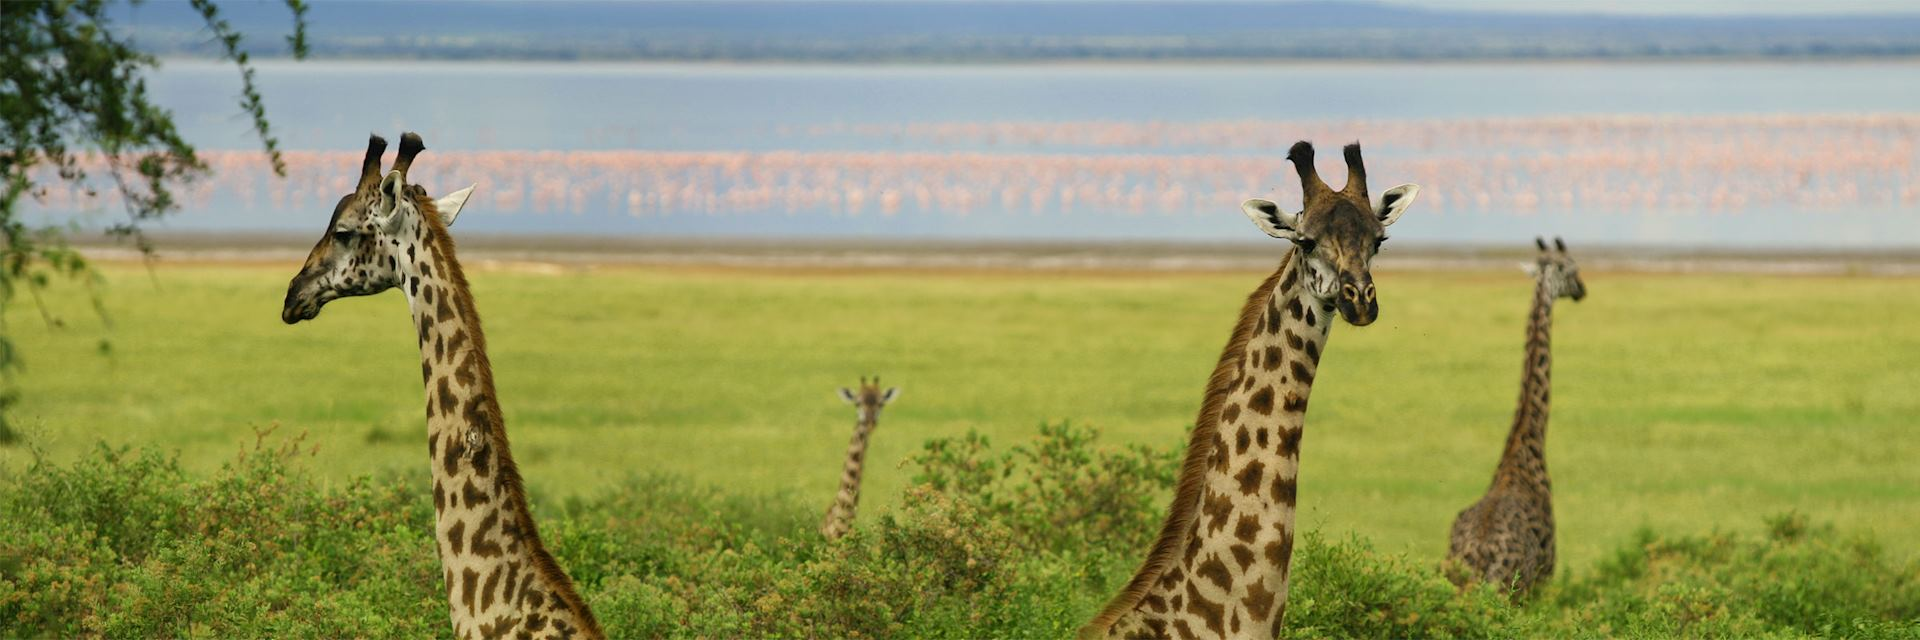 Giraffes in Lake Manyara National Park